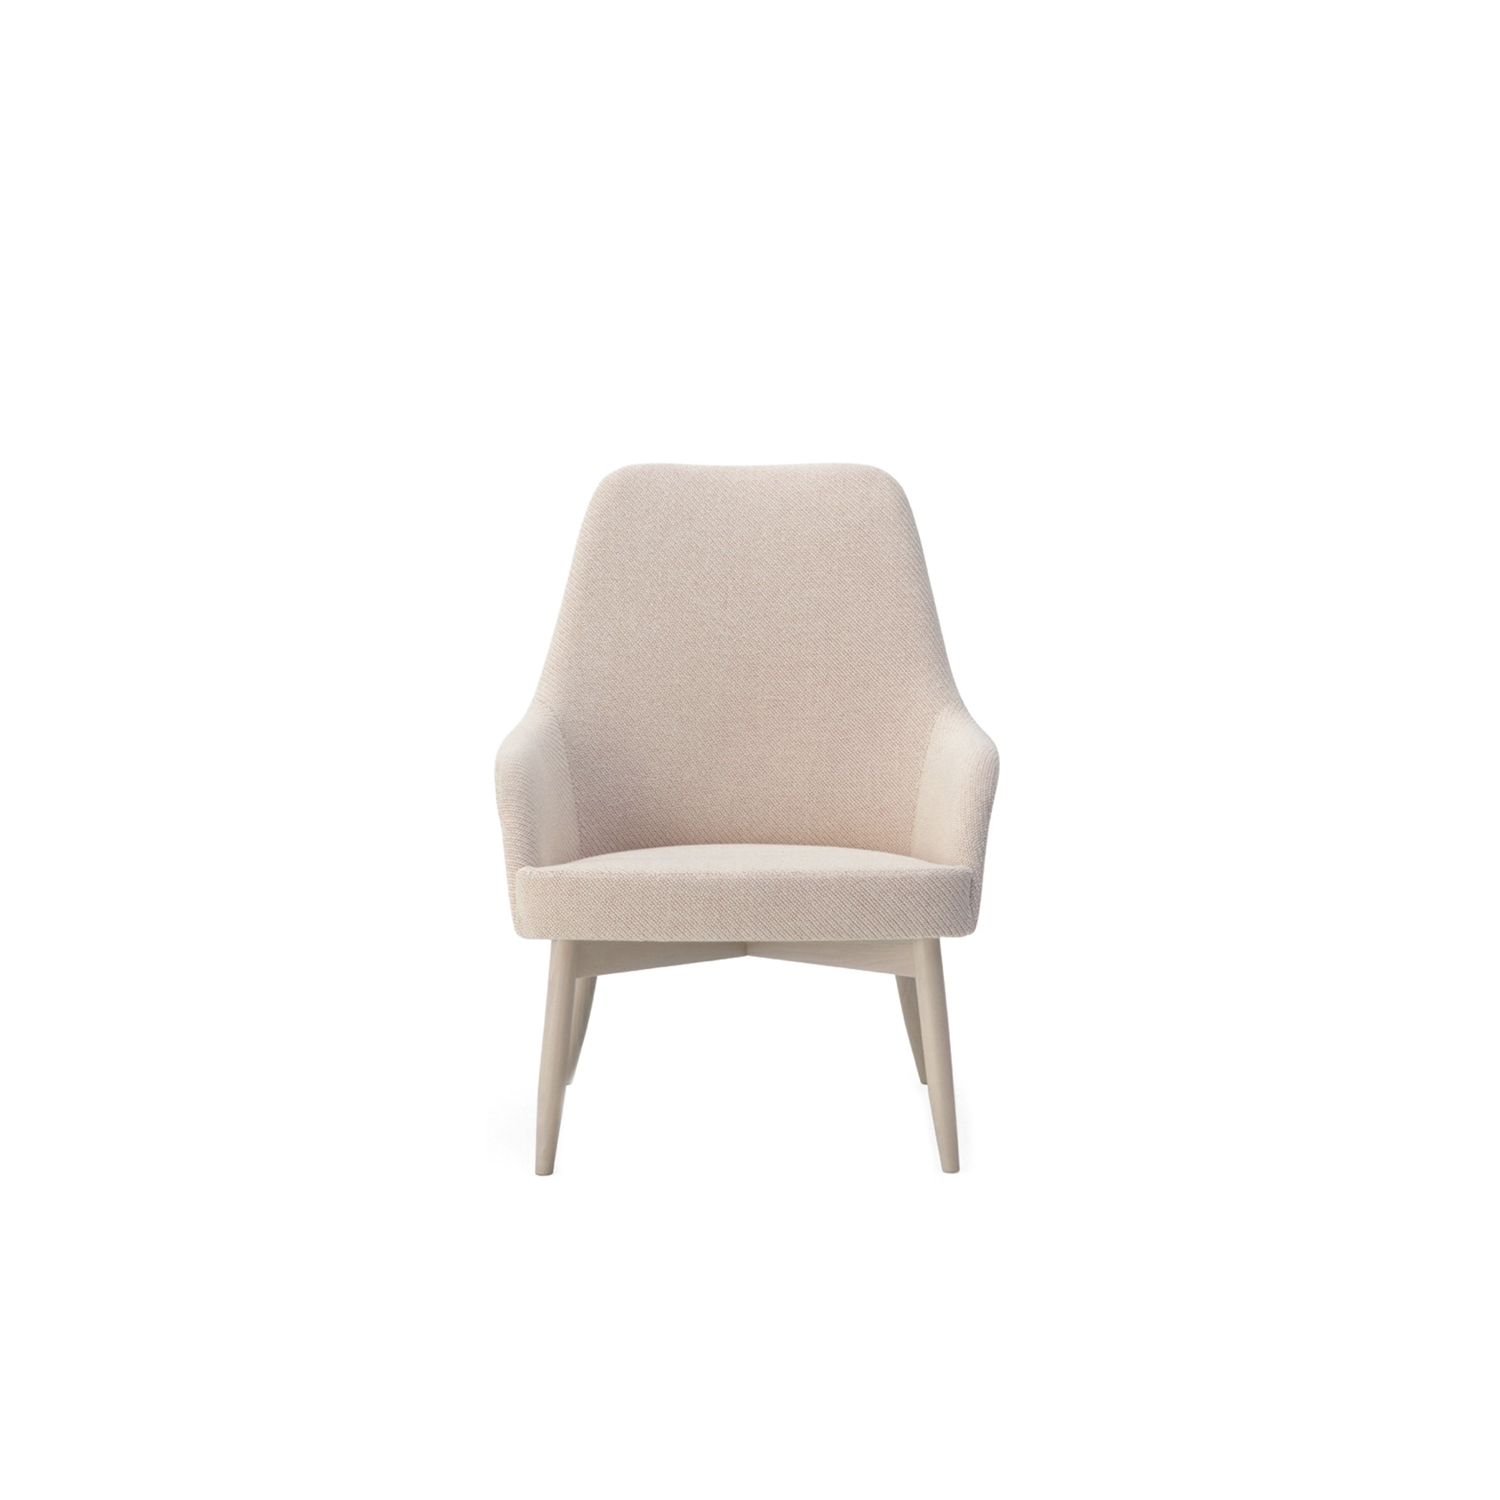 Spy High Lounge Chair - Lounge chair and Spy High in solid beech or lacquered steel, Spy Wingback in solid beech, all three models with upholstered plywood shells. 